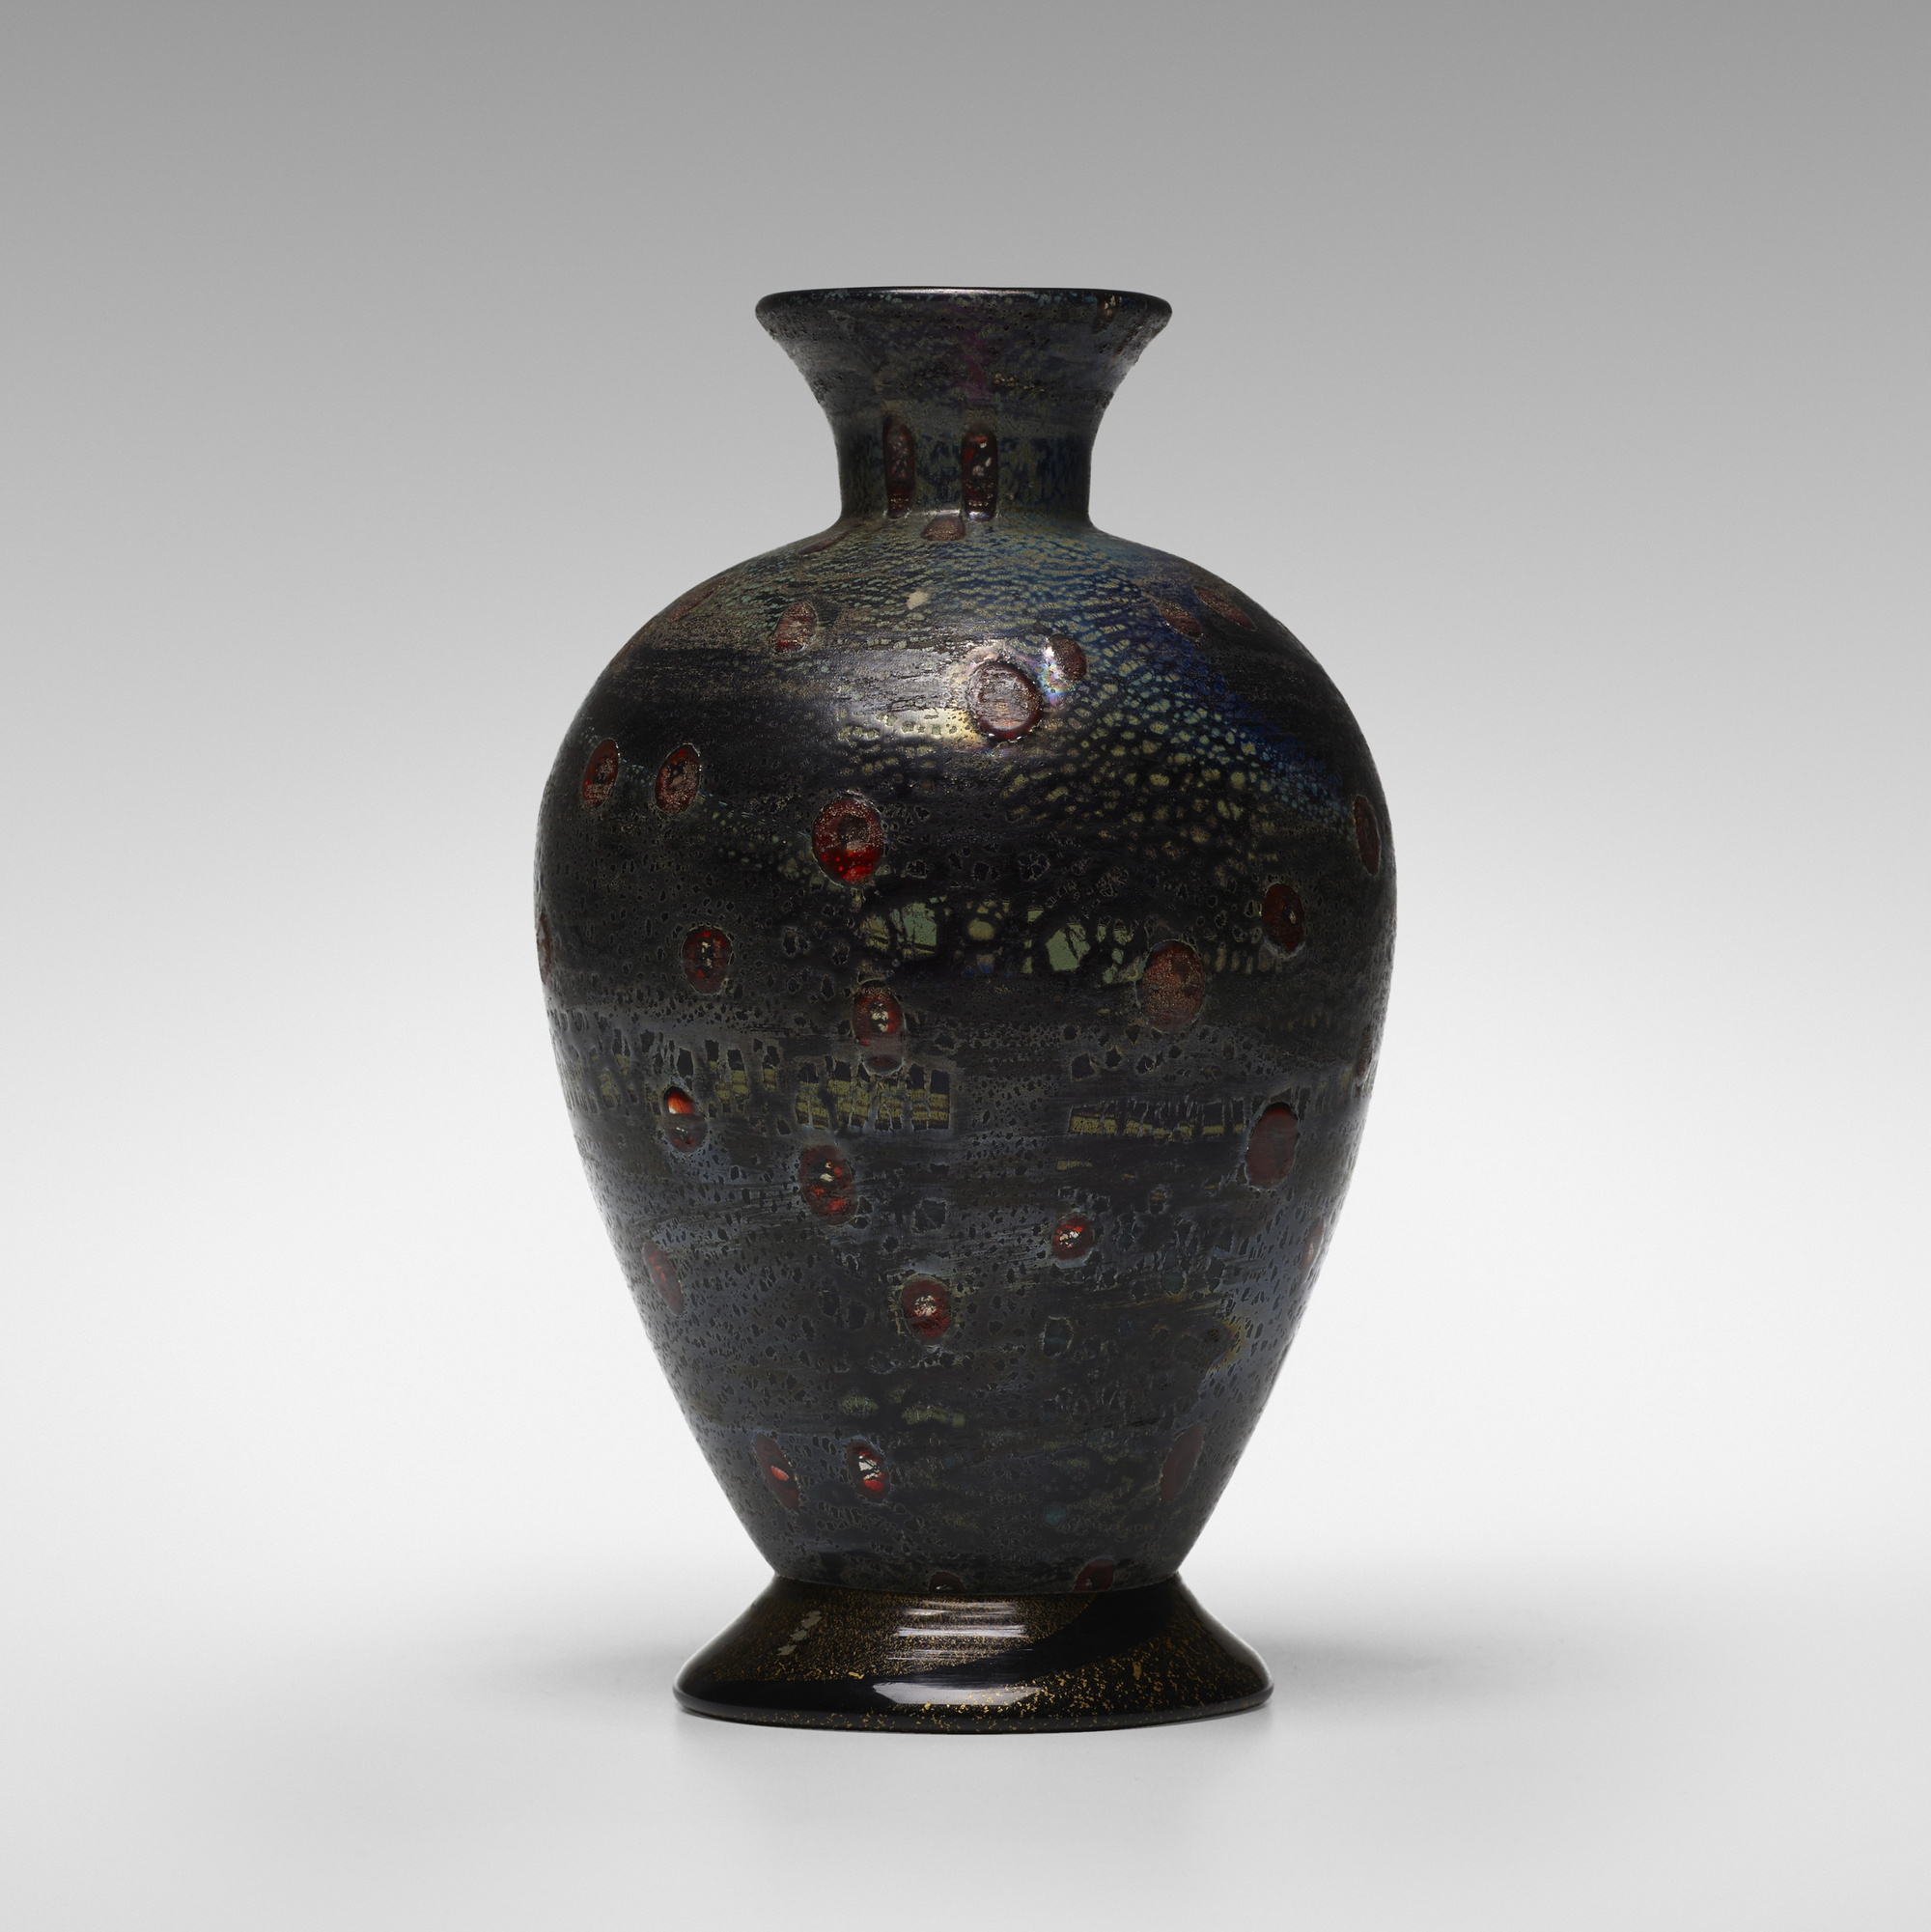 186: Giulio Radi / vase (1 of 3)